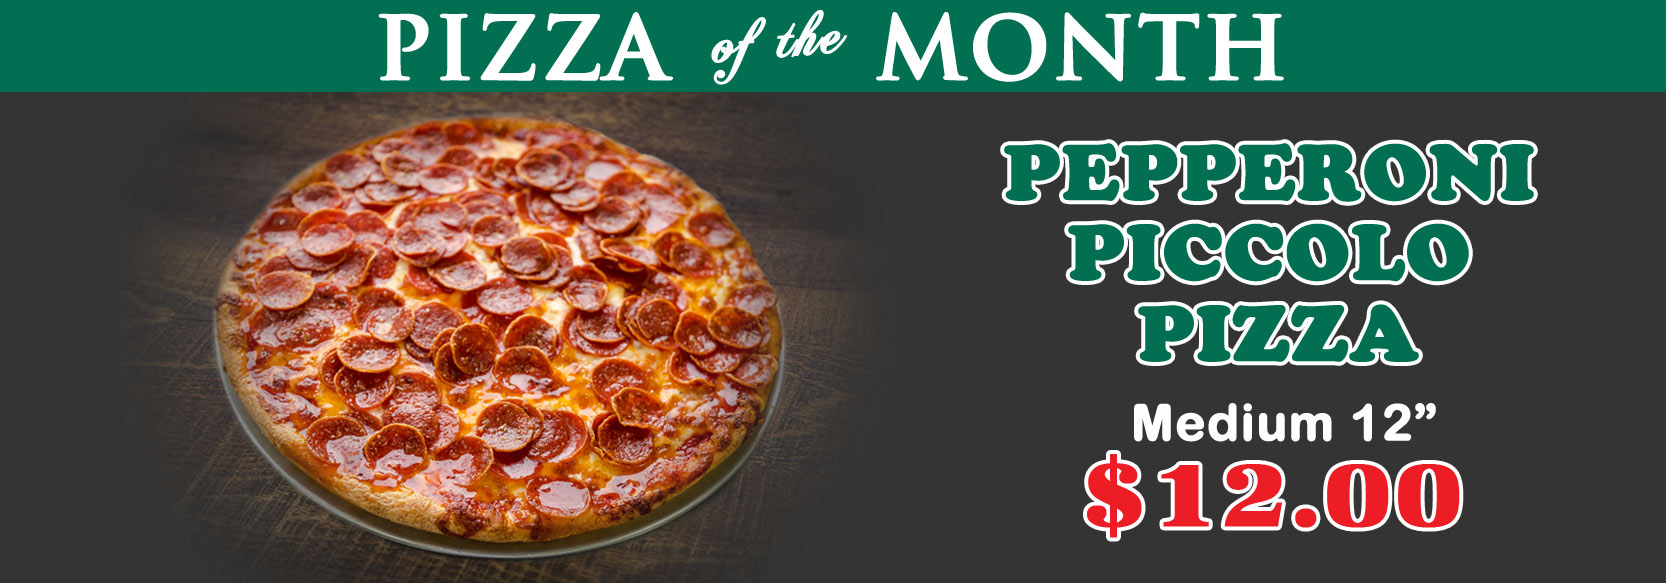 August 2018 Pizza of the Month - Pepperoni Piccolo Pizza